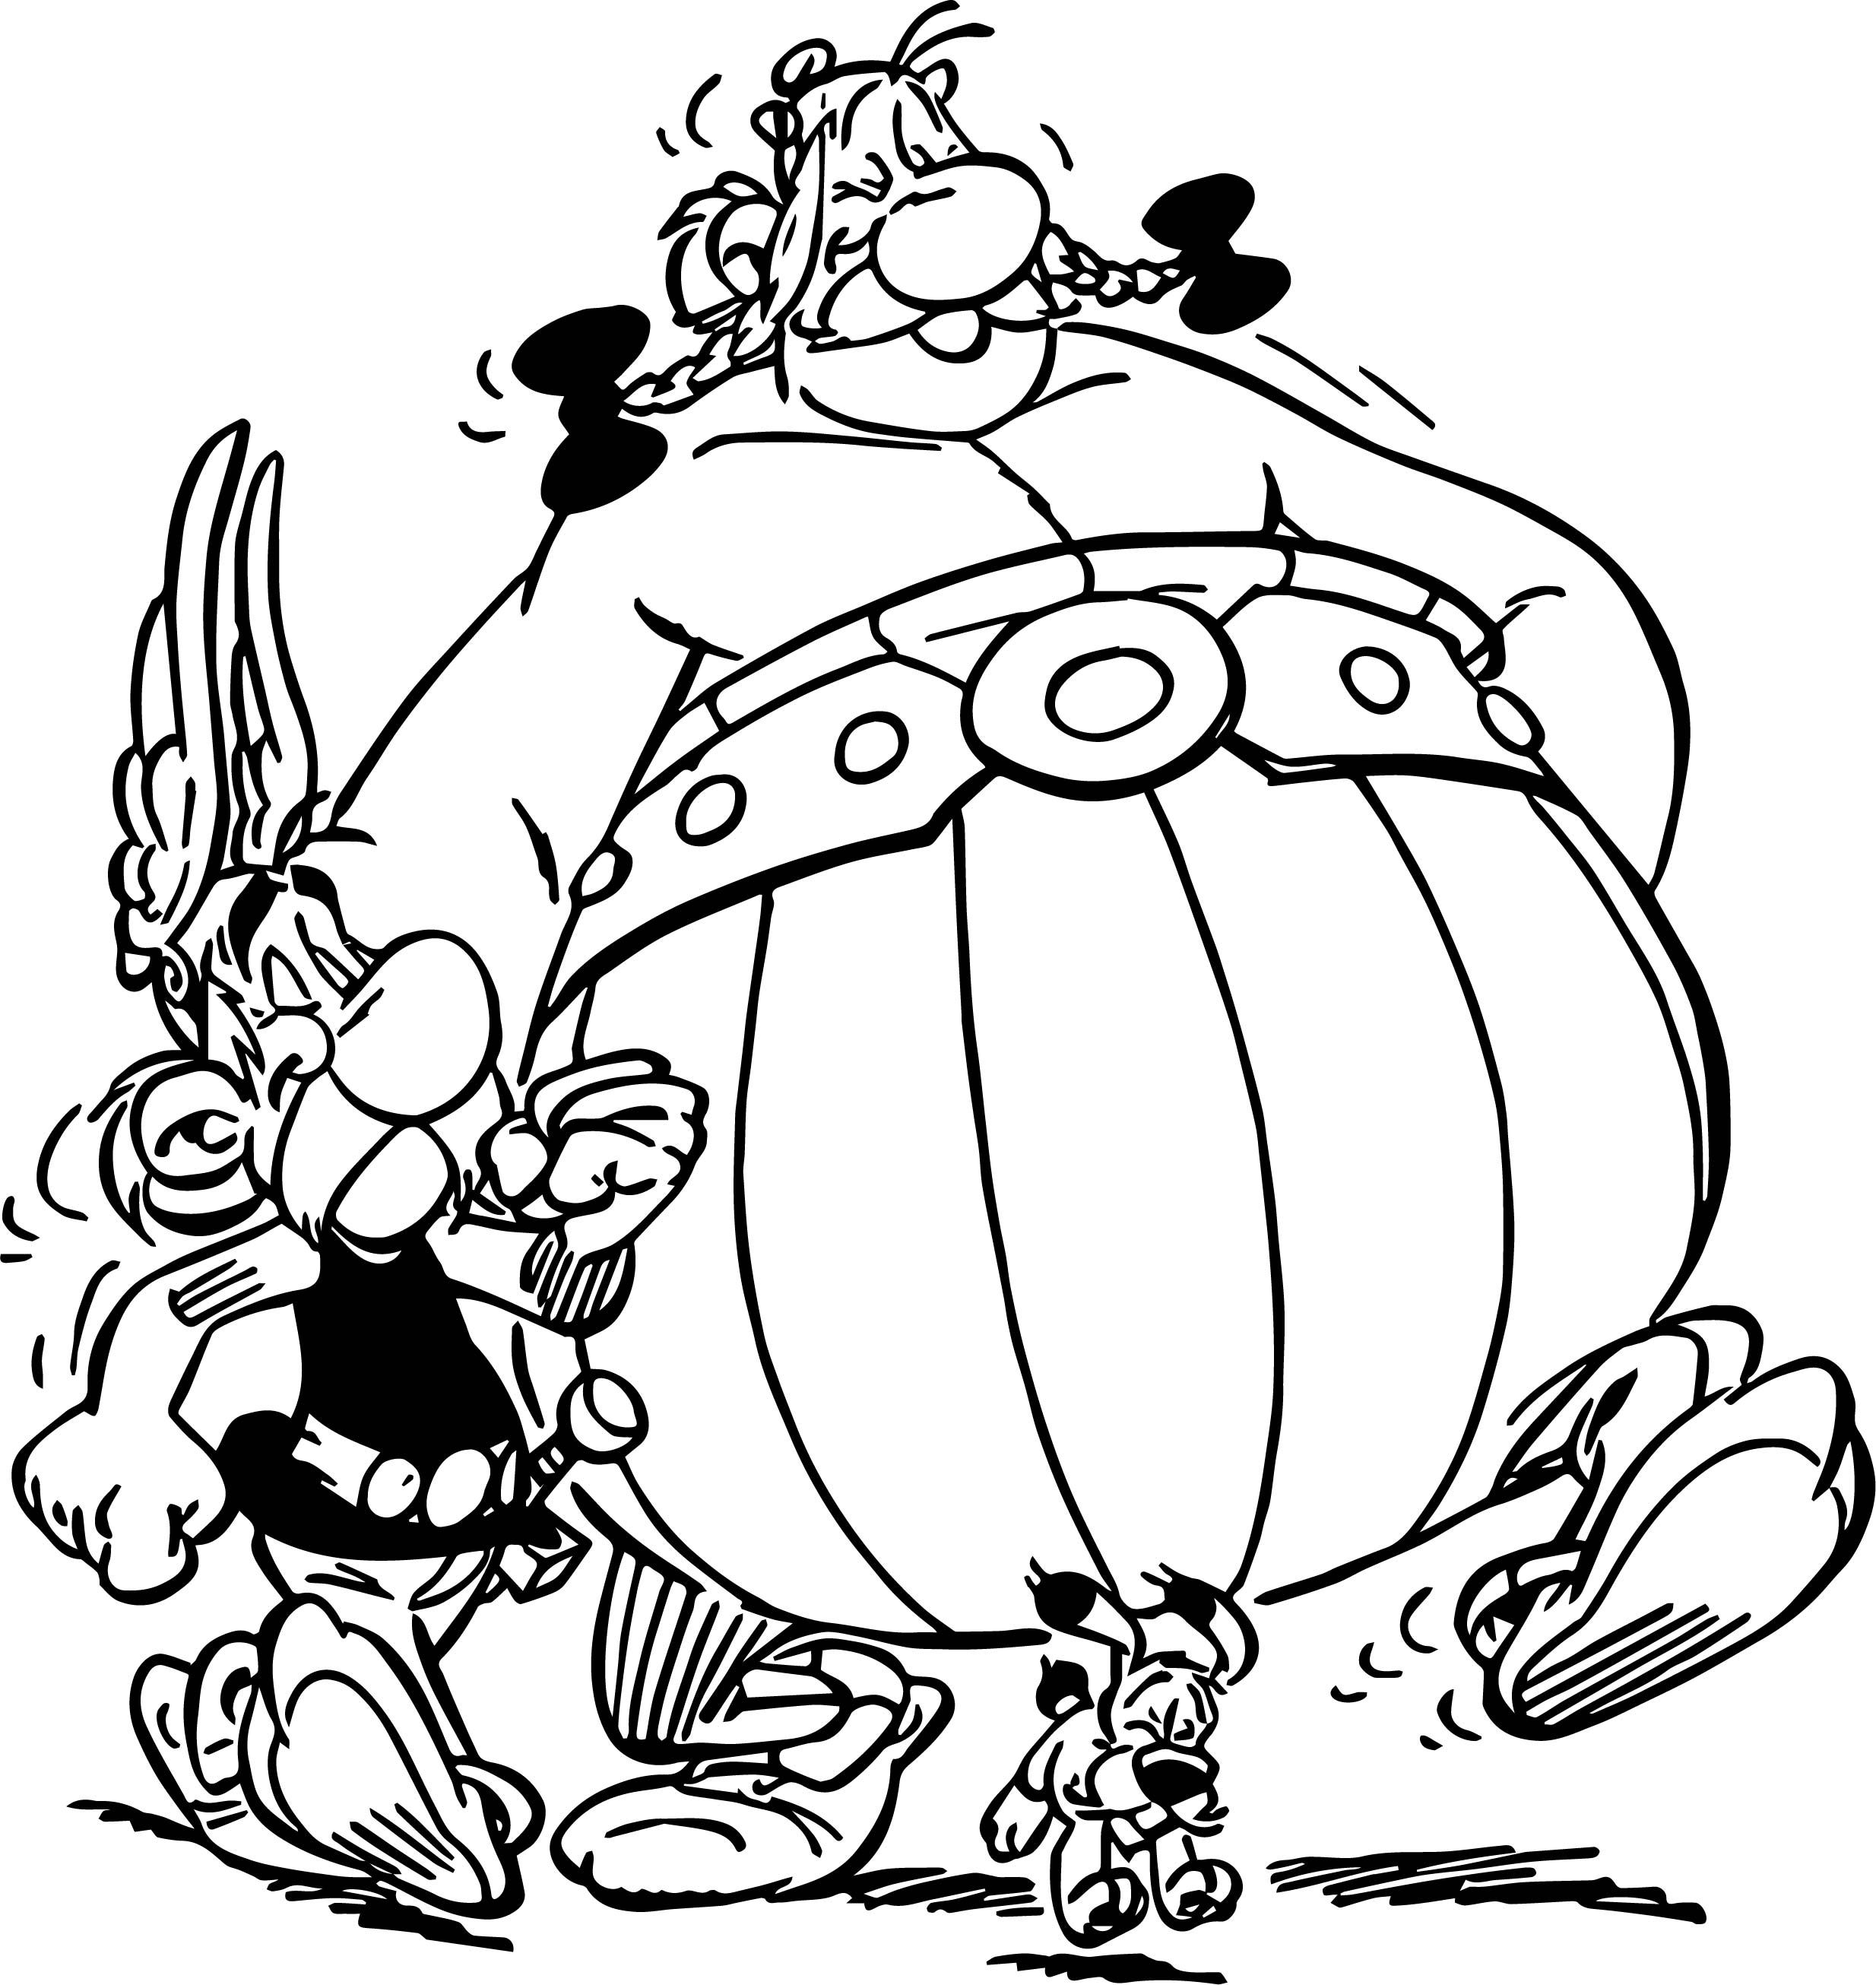 Awesome Asterix Obelix Dog Walking Coloring Page Cartoon Coloring Pages Coloring Pictures Coloring Books